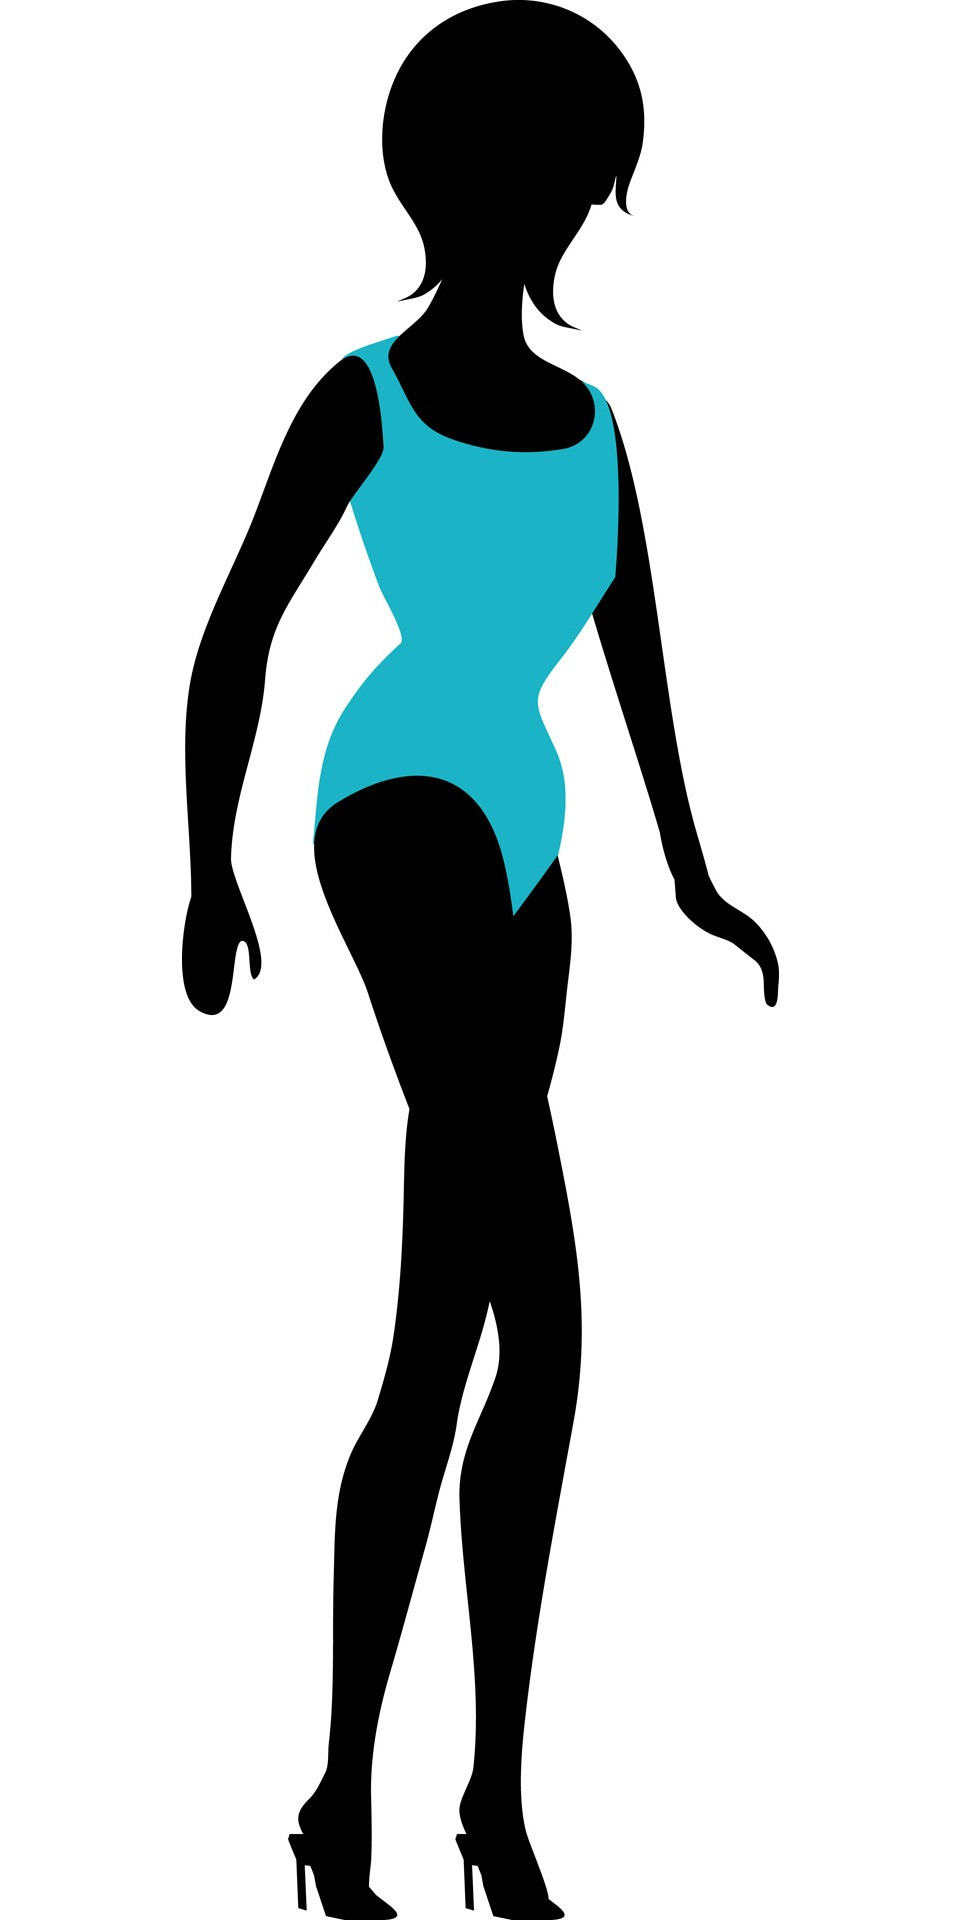 Girl woman lady black silhouette blue swimming costume.